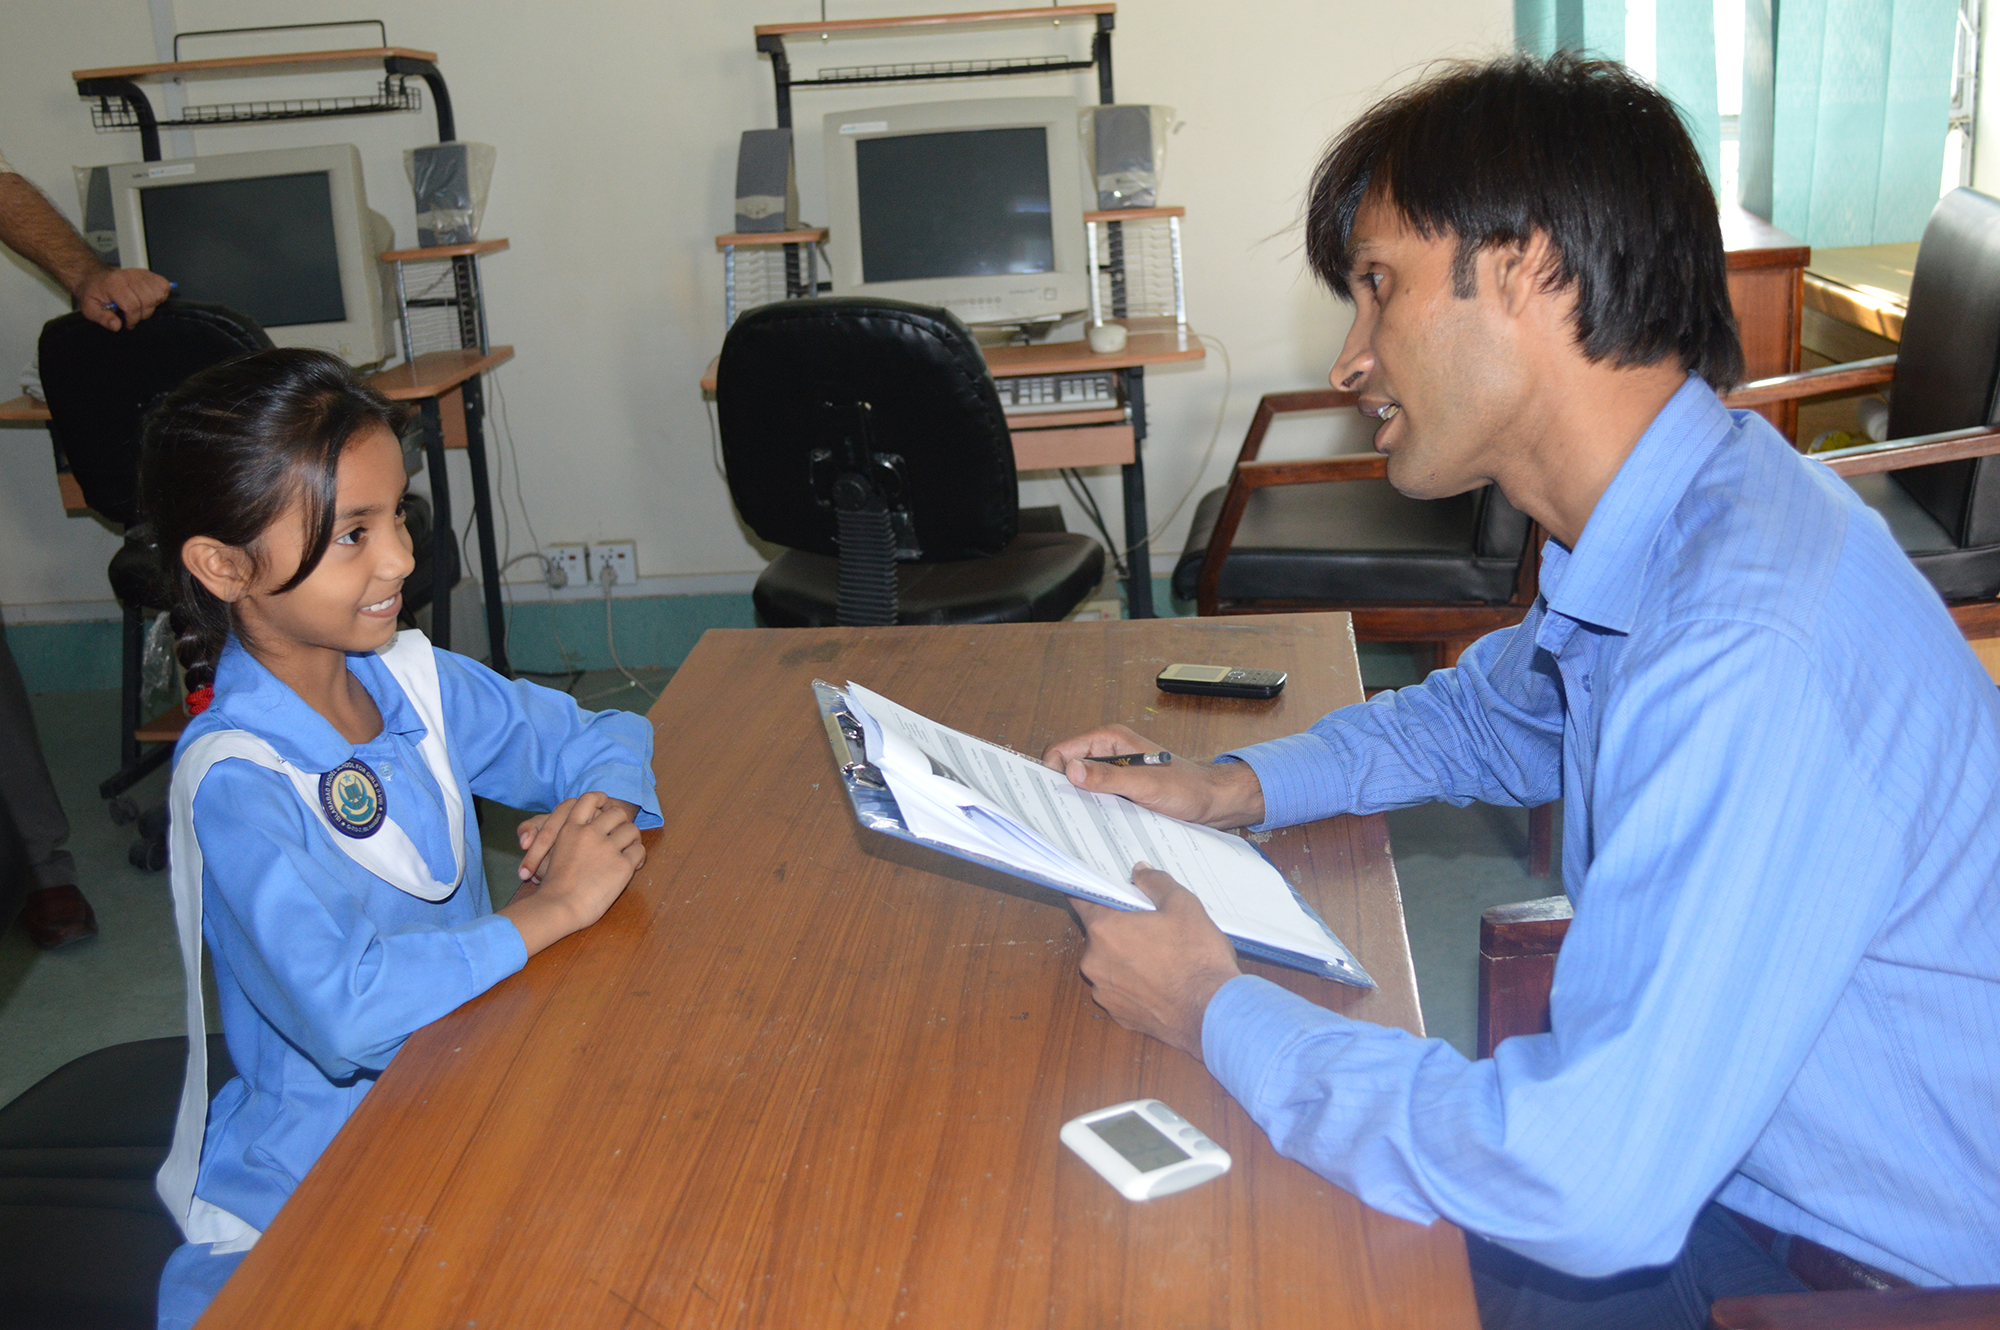 The evaluator in a primary school in Pakistan talks with the young girl about the reading assessment, explaining how it works and what she will be doing.